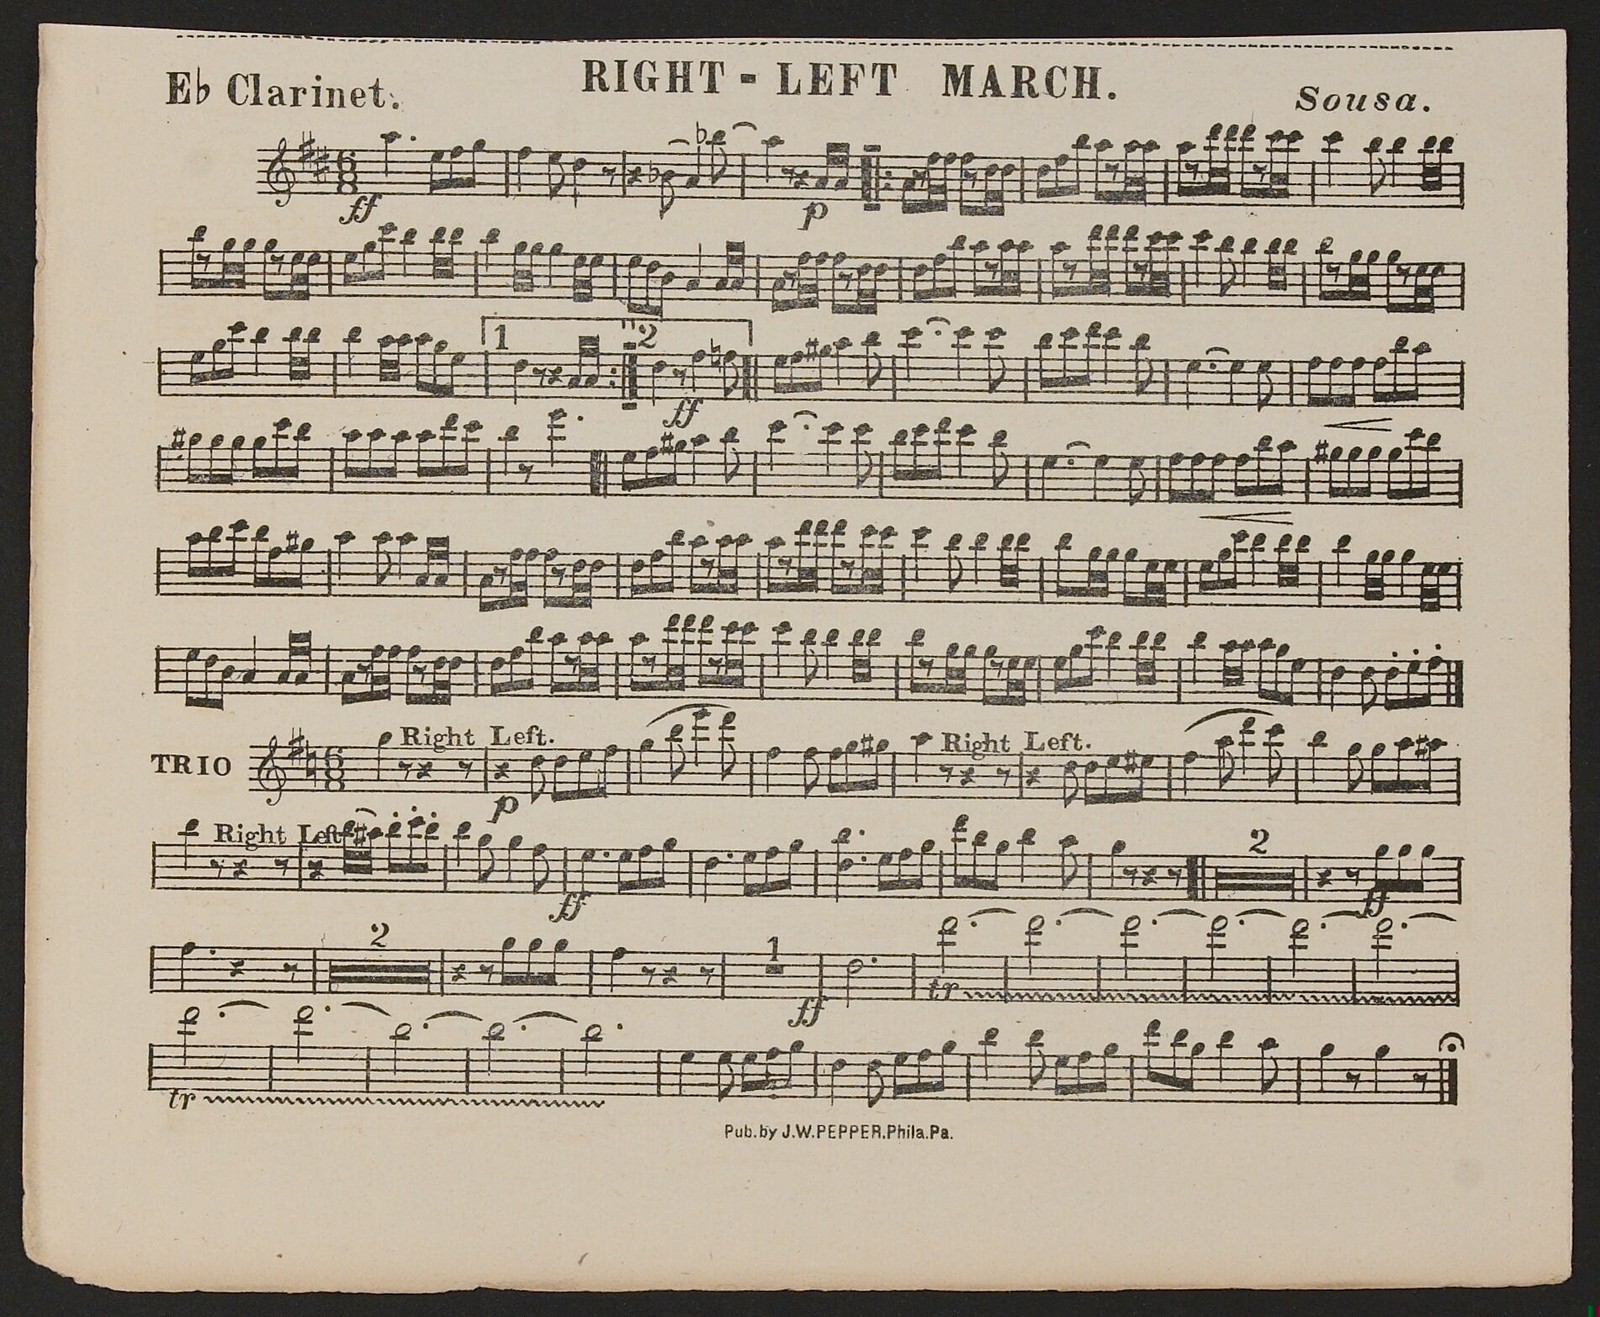 Right-Left March